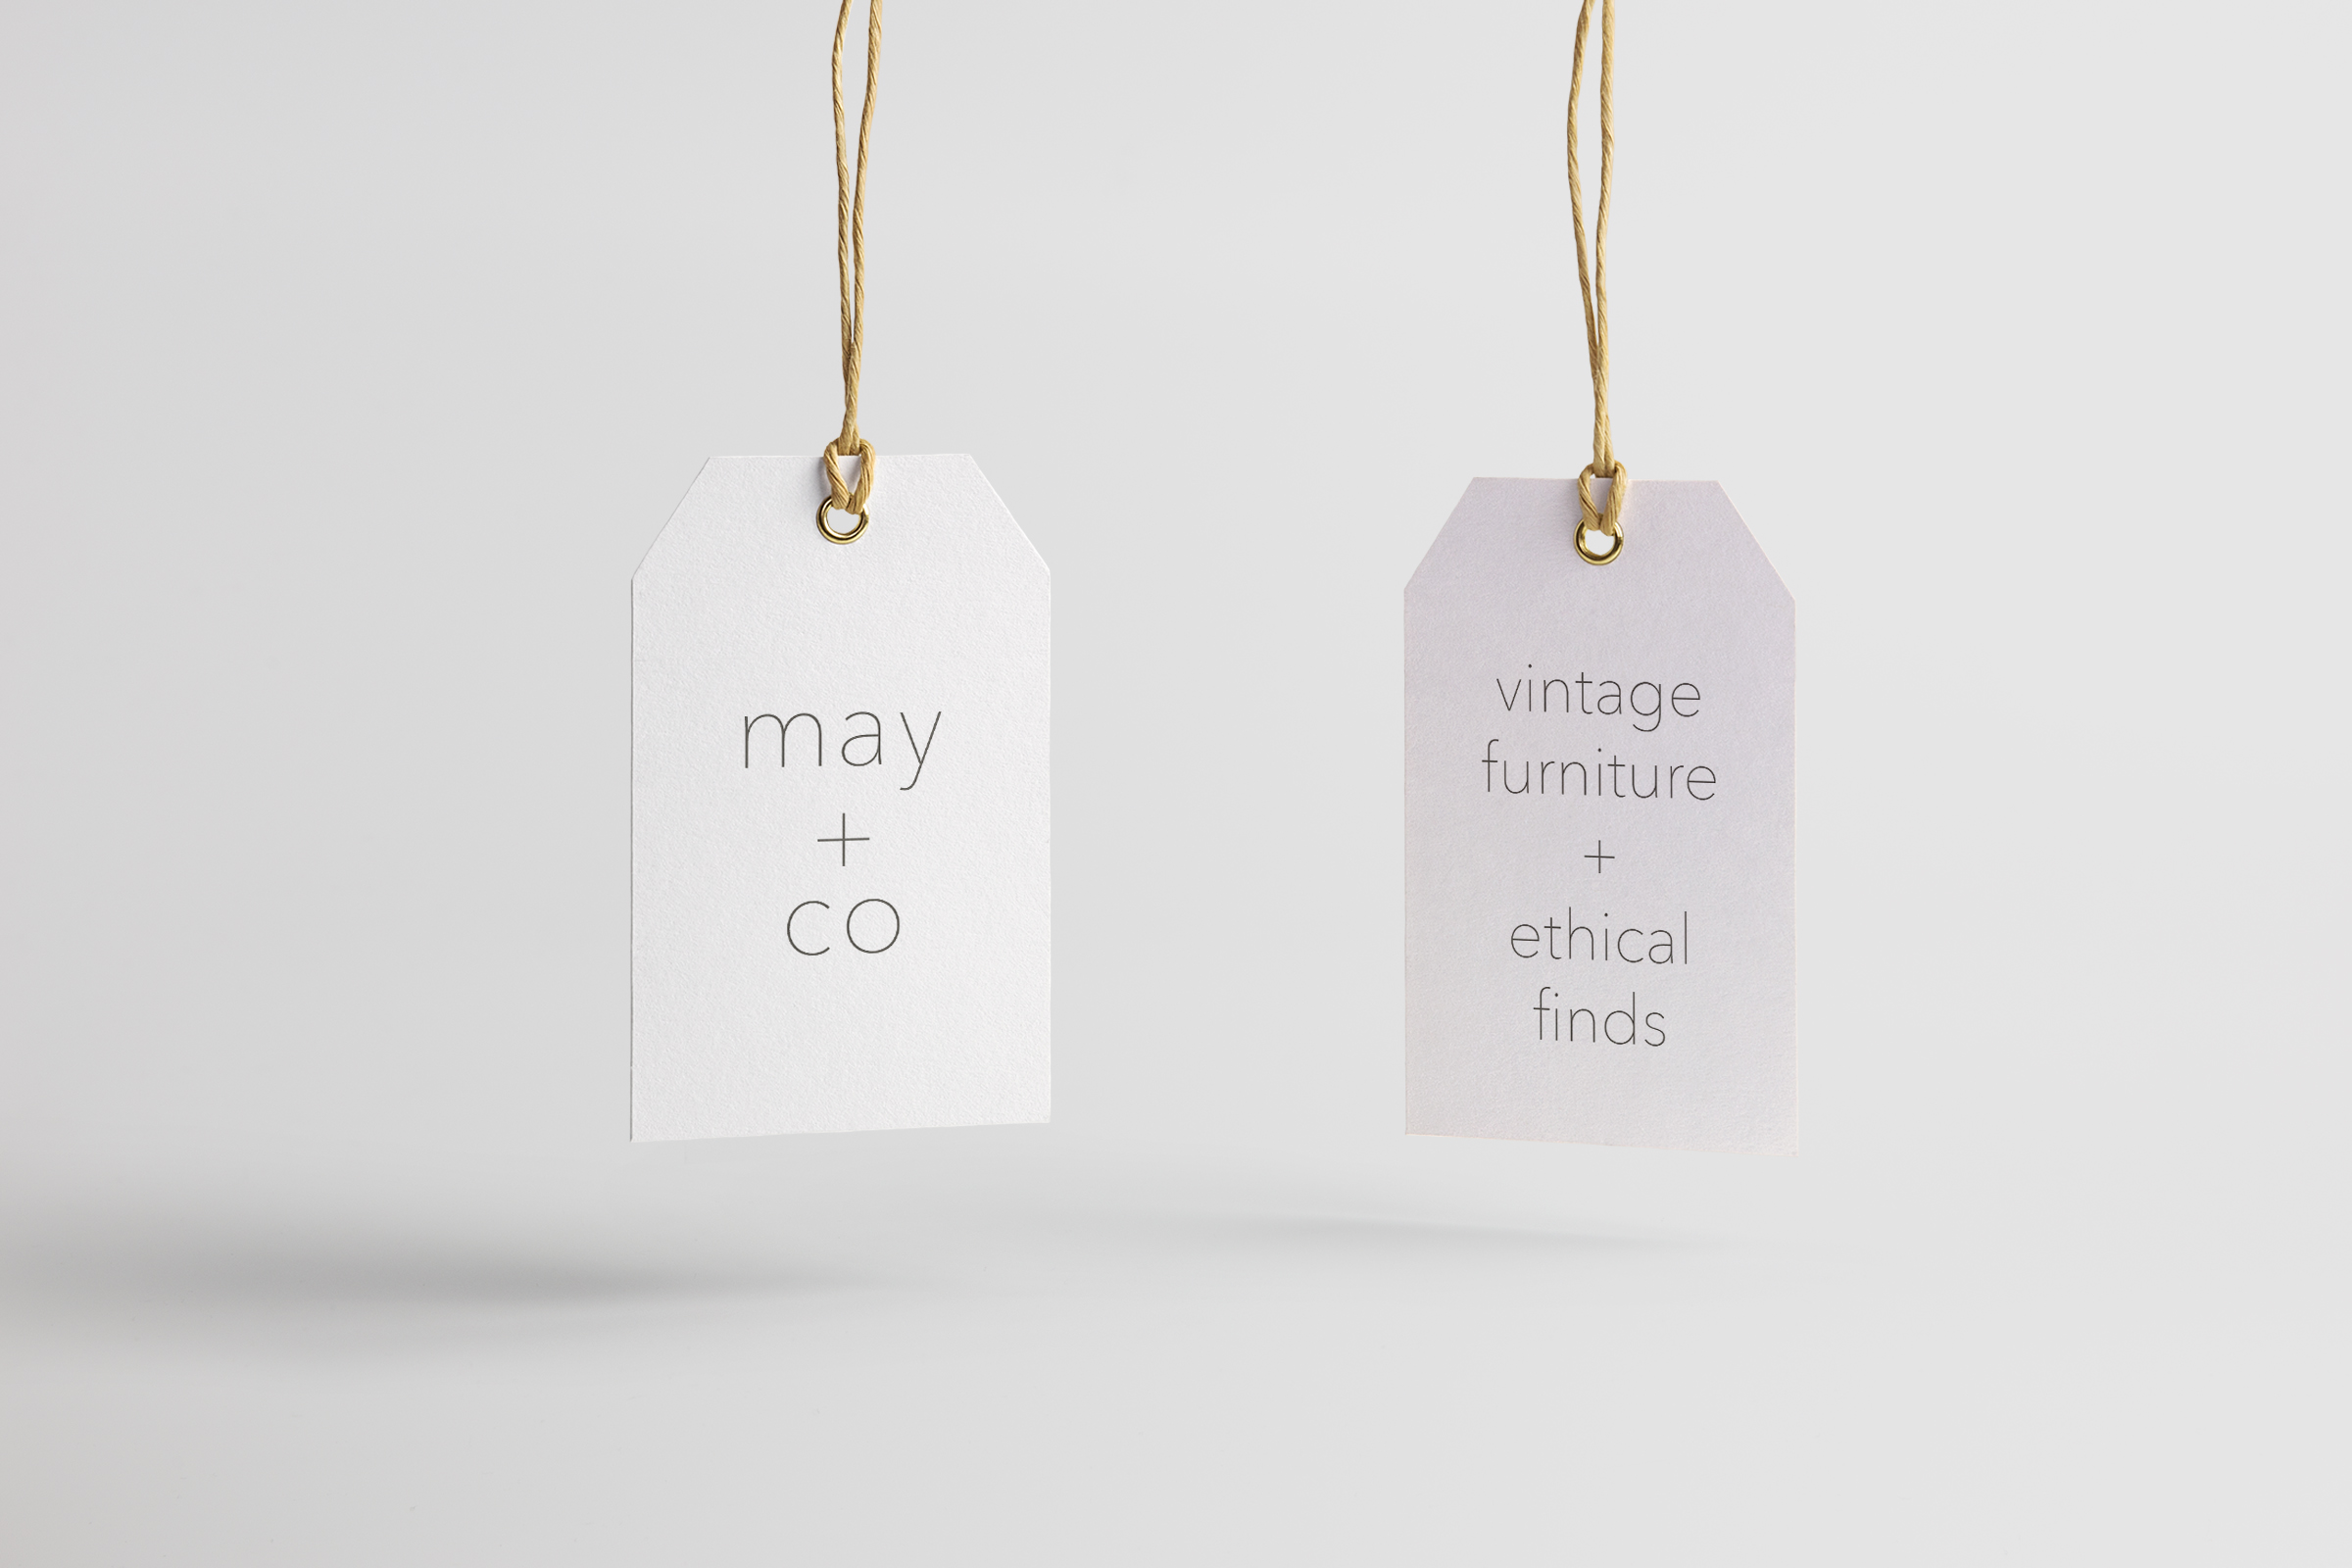 Image showing tags with May + Co logo on